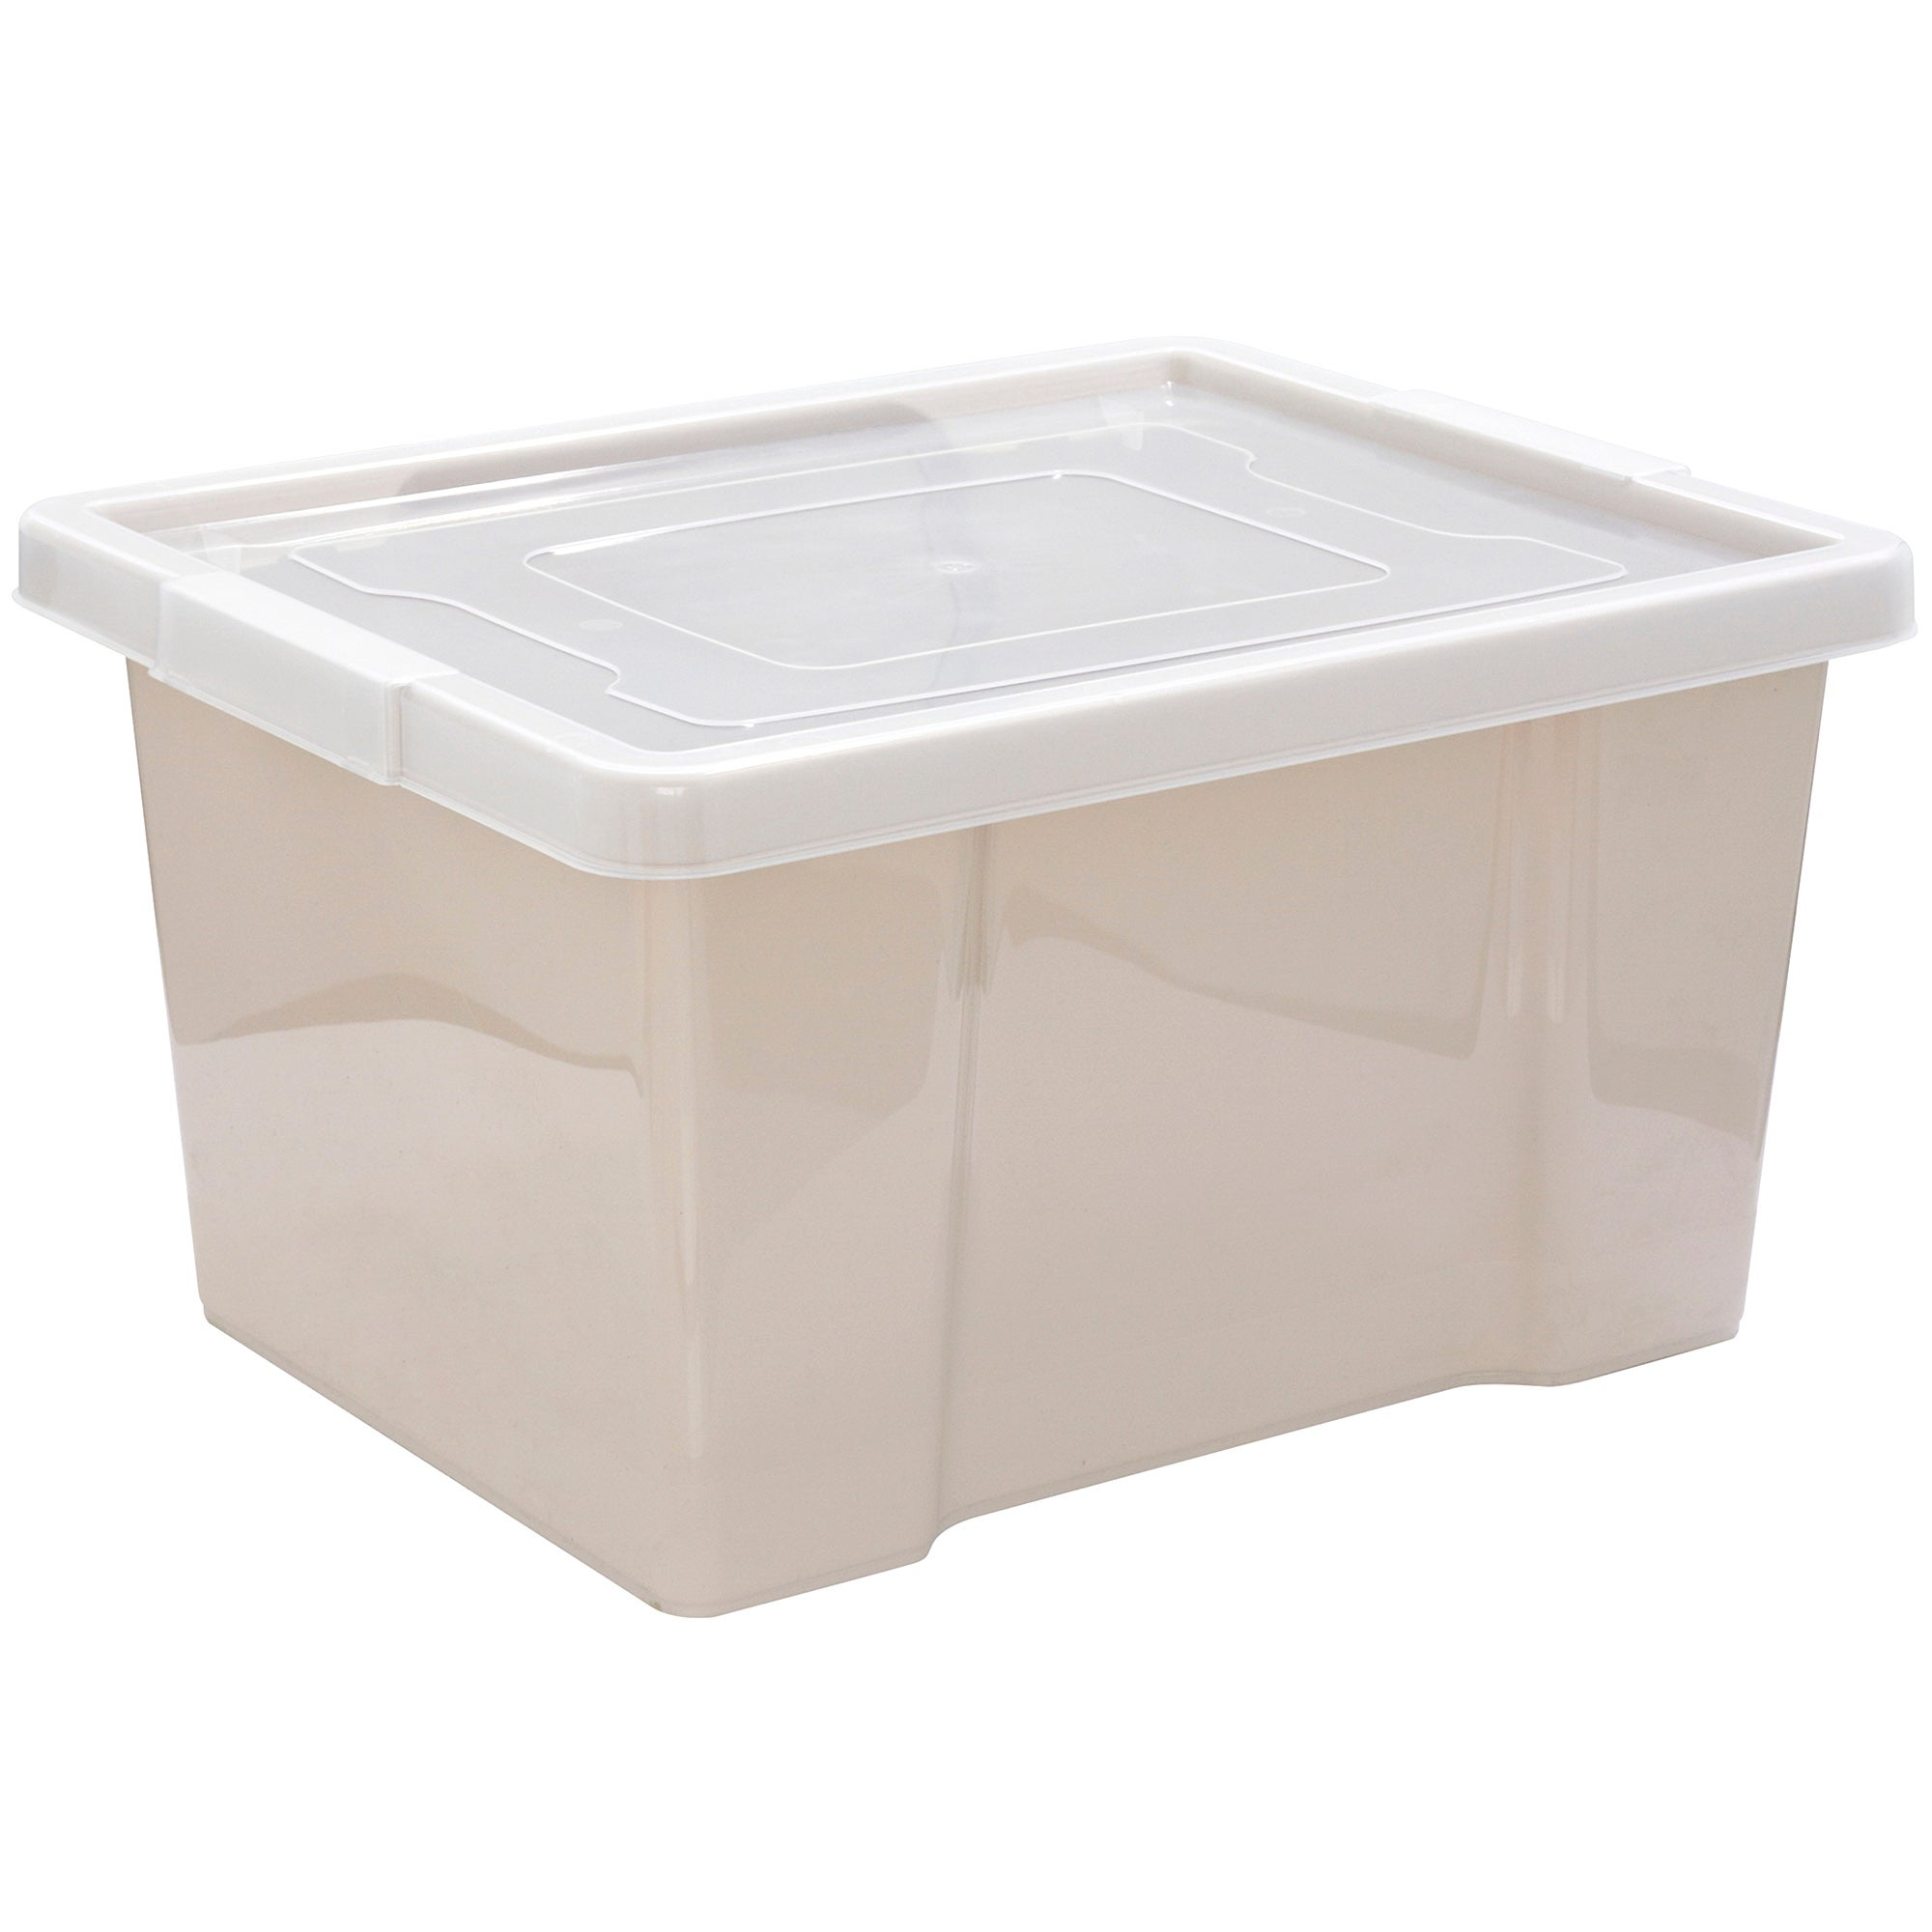 Simply Plastic Large Storage Box